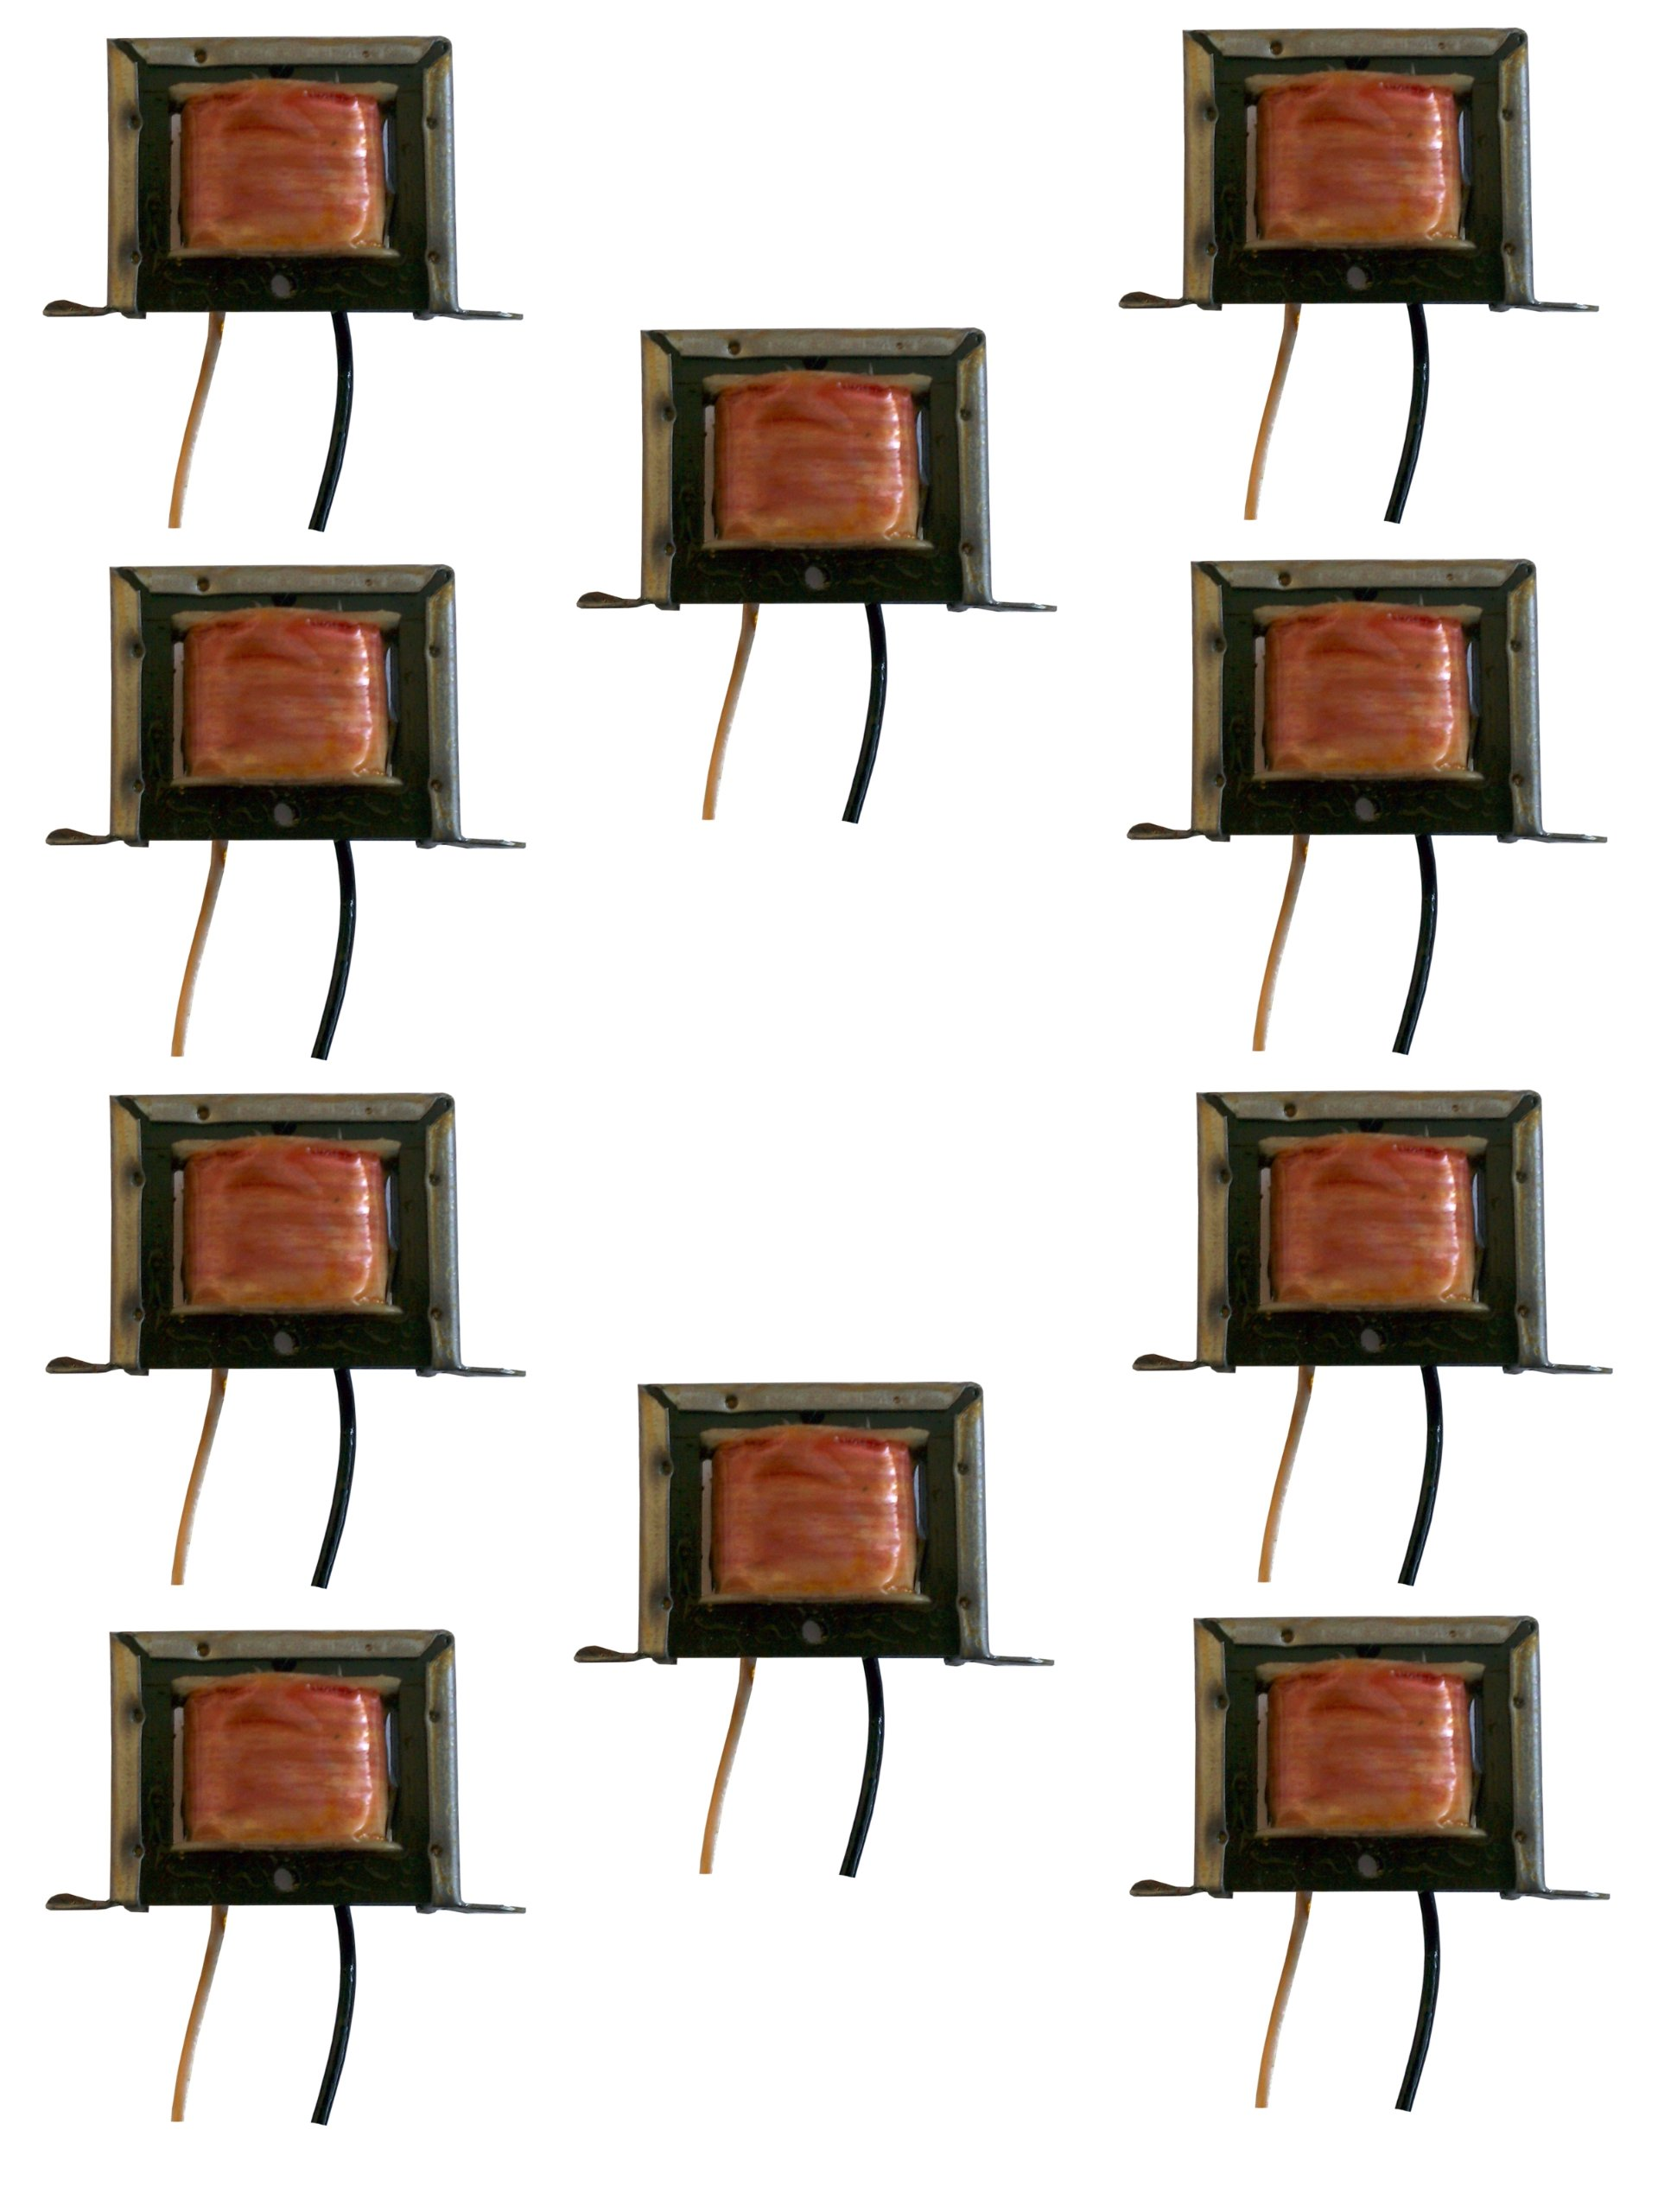 120-Volt 1-Lamp F8T5 Normal Power Factor Magnetic Ballast (10-Pack)-Radionic Hi Tech Inc.